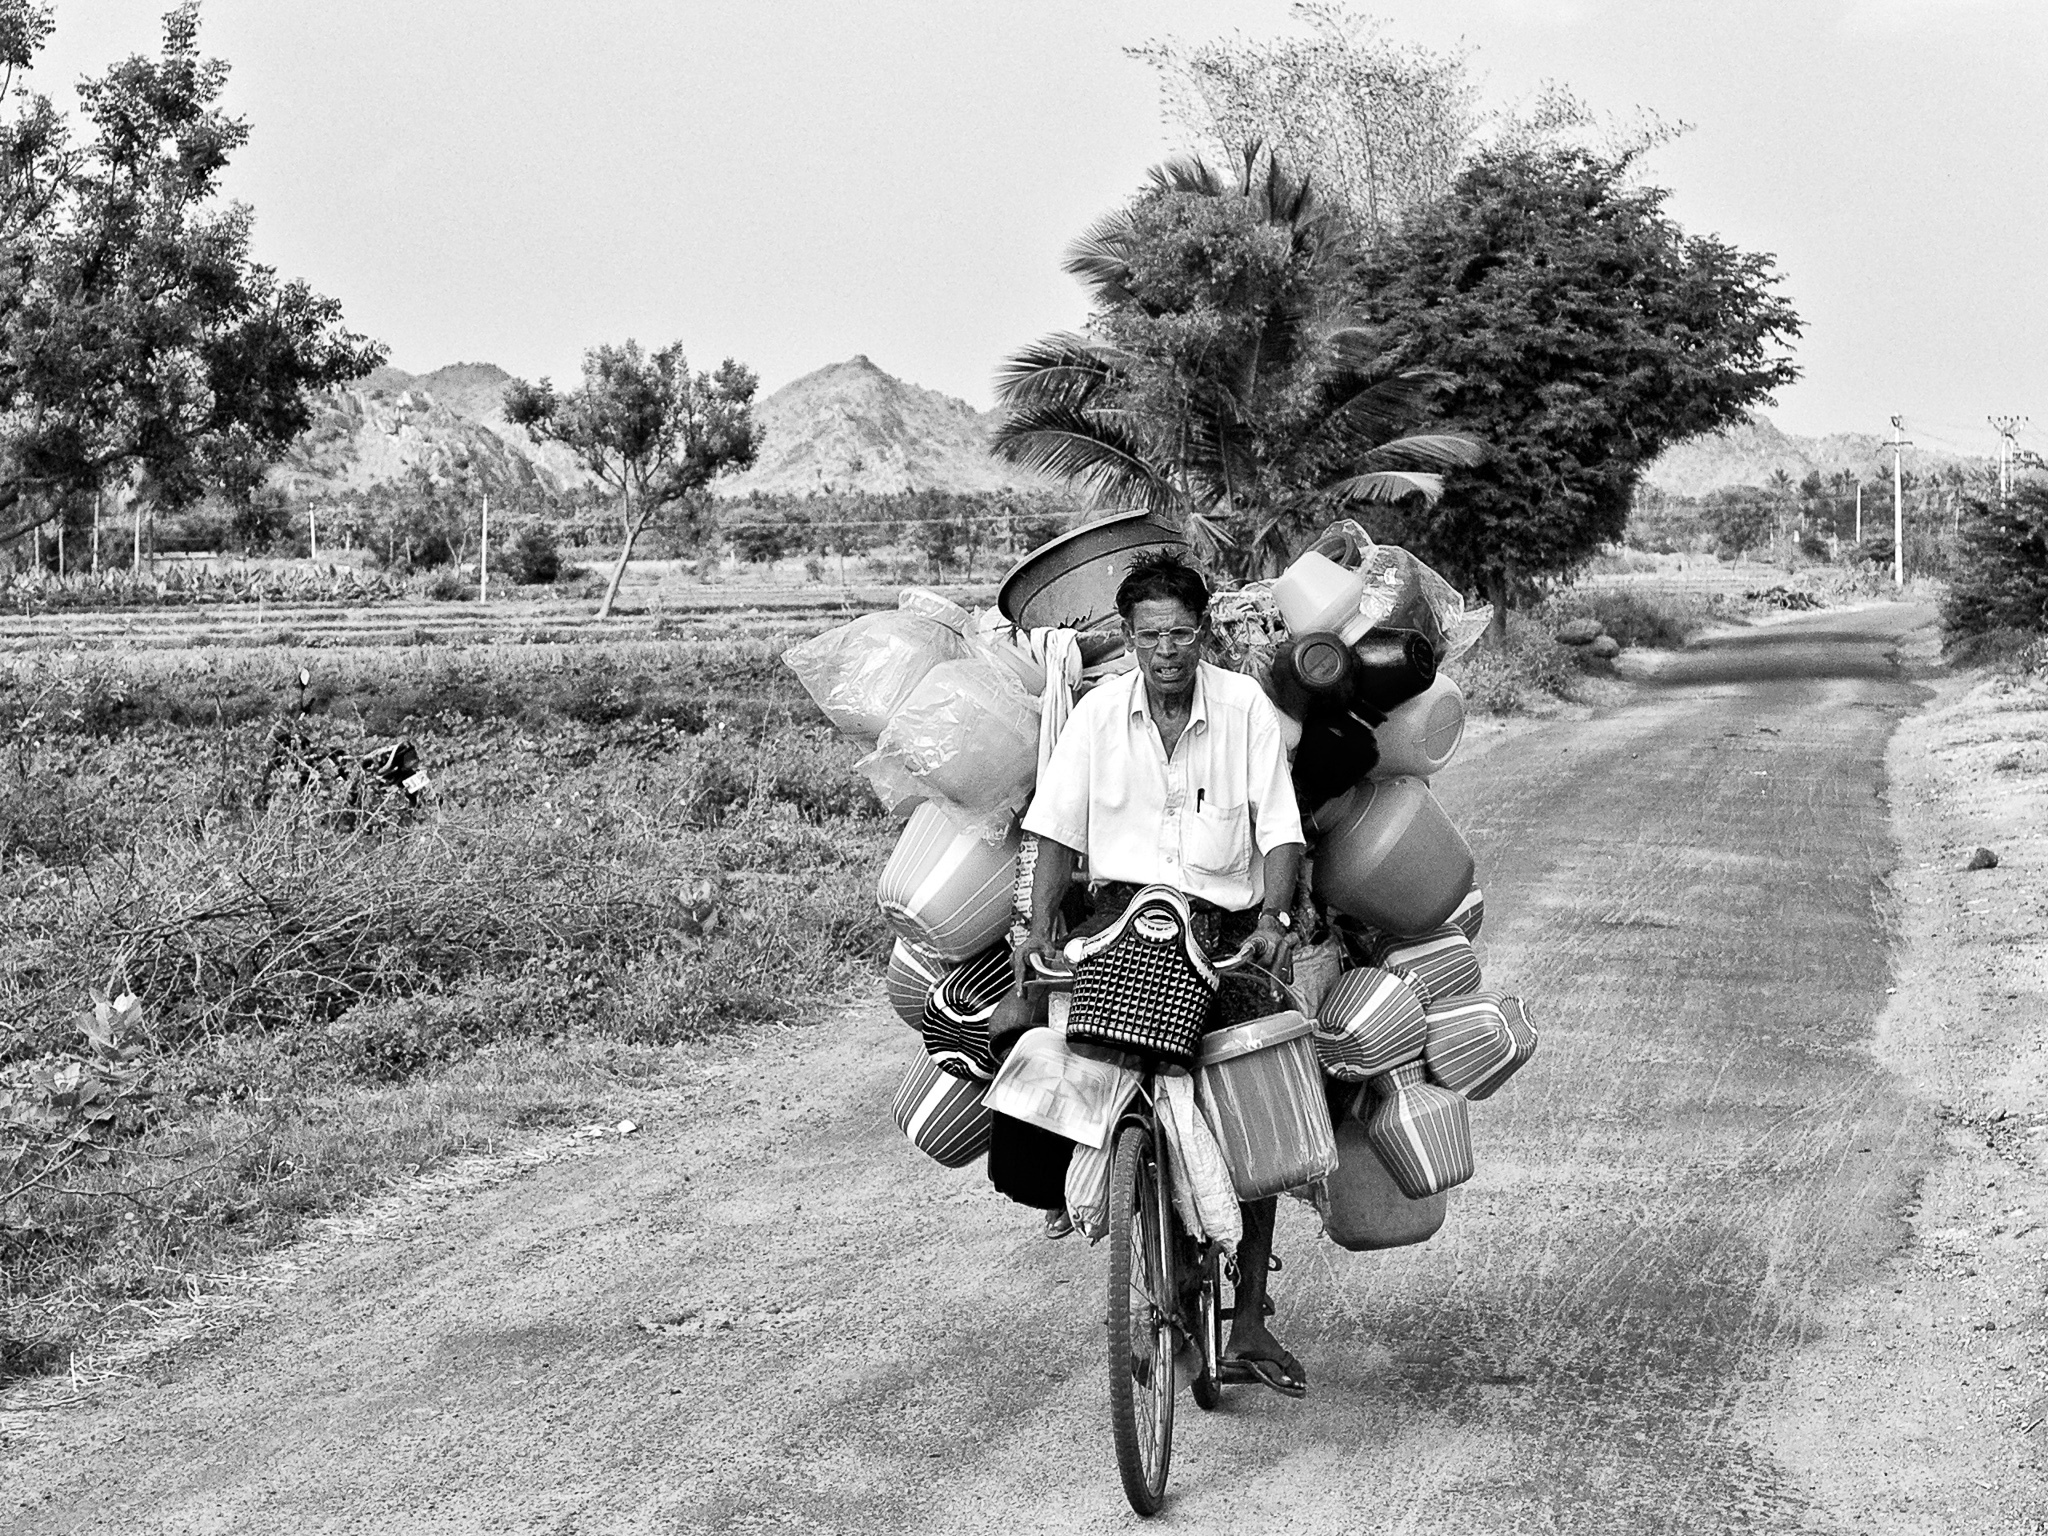 A plastic pot seller, on his way to another village. T. Kallupatti, Tamil Nadu, India